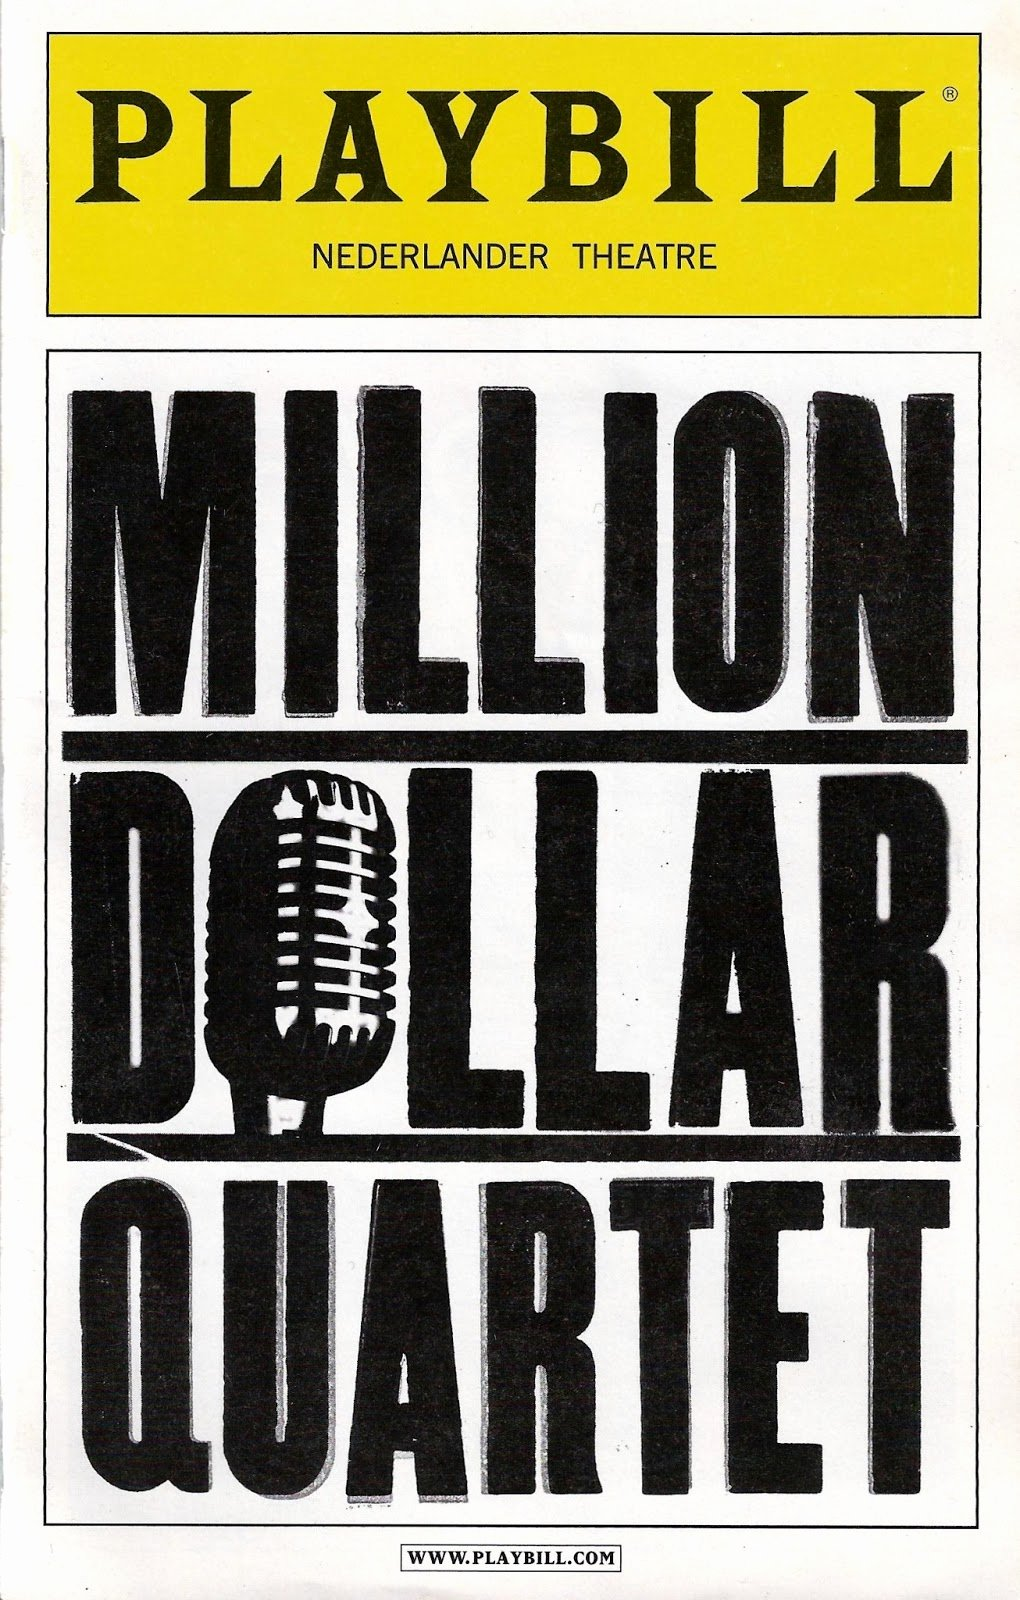 Playbill Template Word Awesome Playbill Template In Microsoft Word Sgasd X Fc2